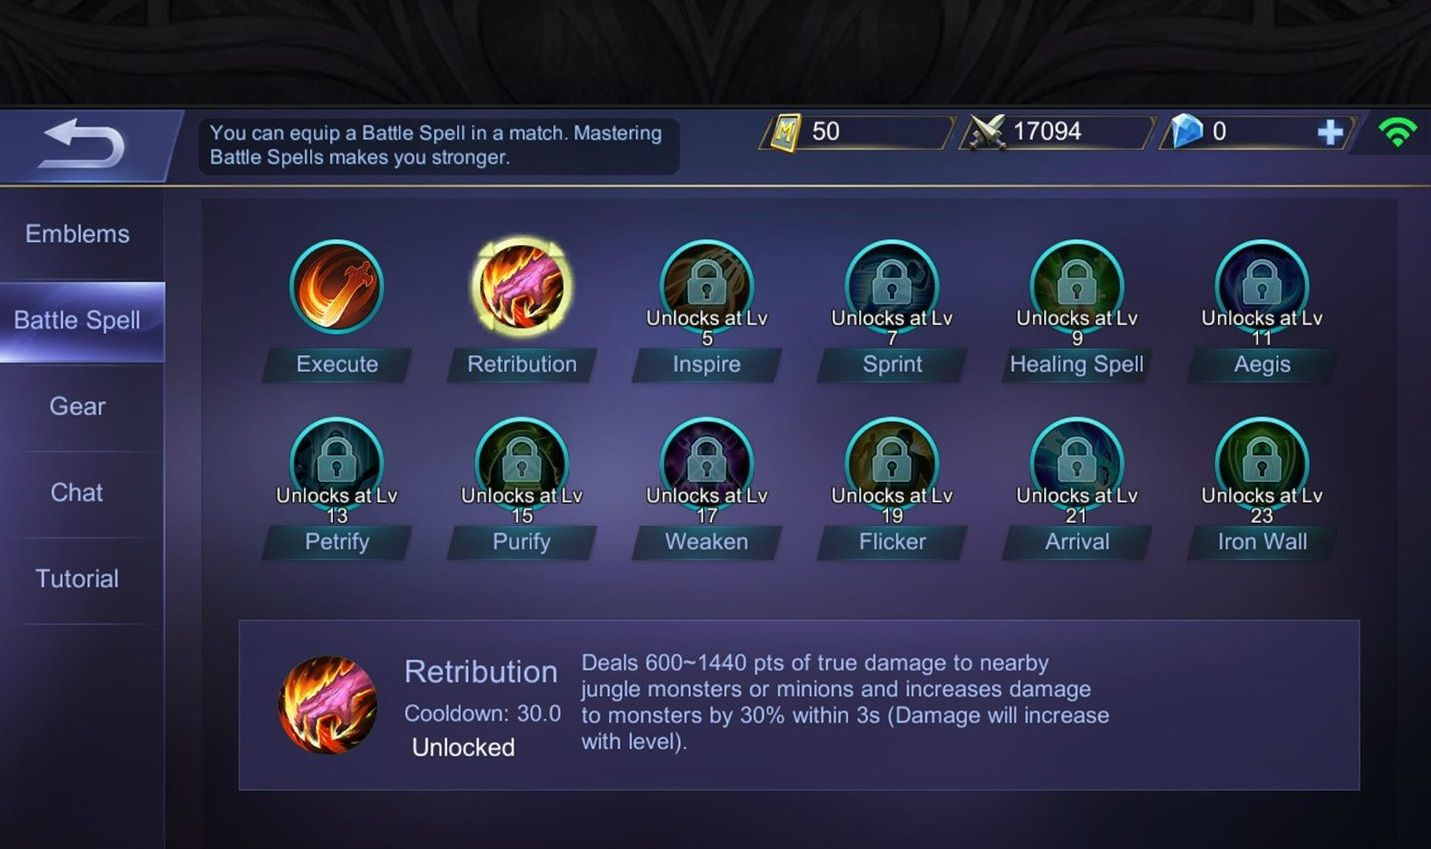 Mobile Legends Battle Spell